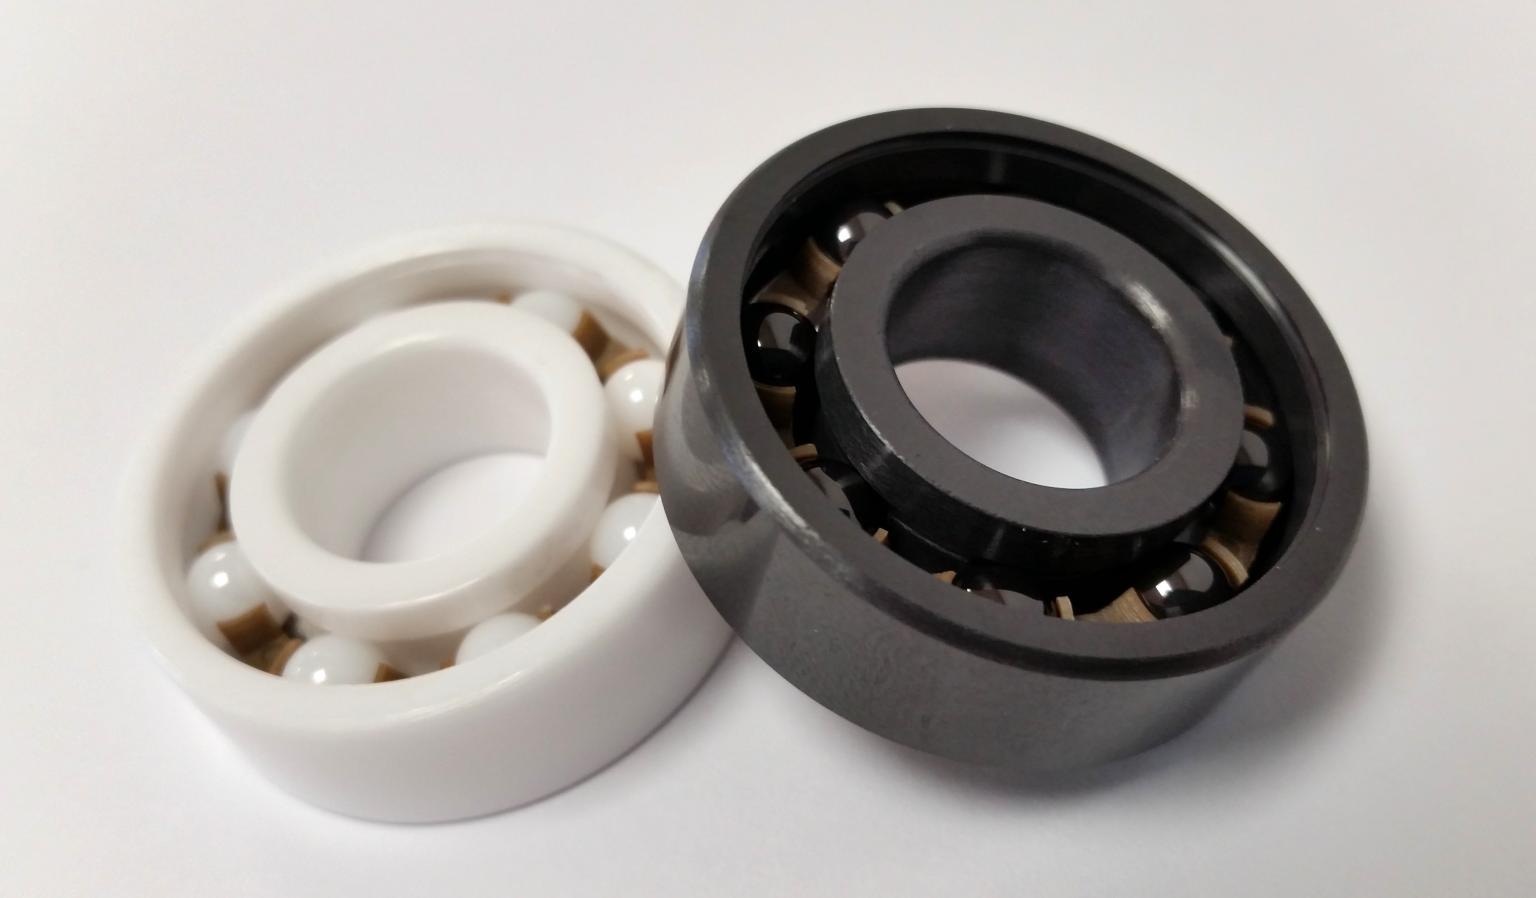 Full ceramic bearings made of zirconia (left) and silicon nitride (right)